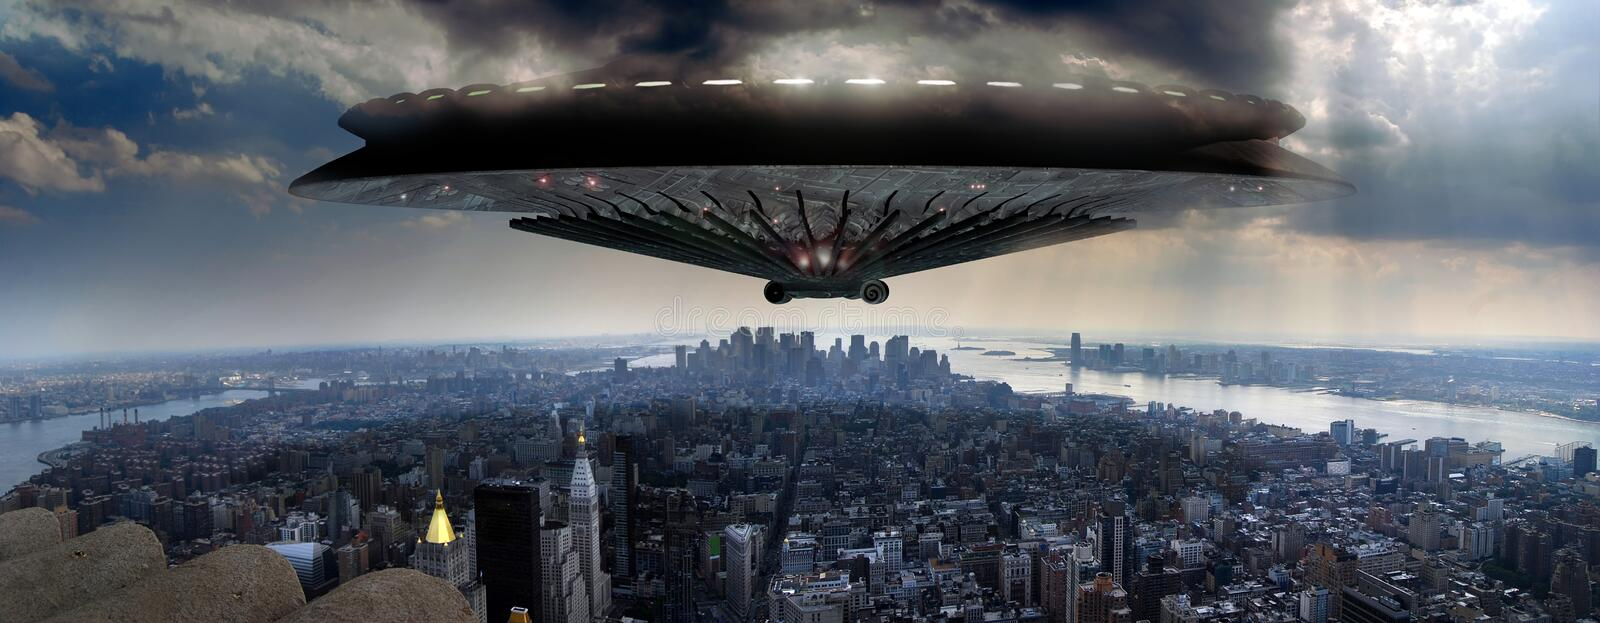 Ufo over Manhattan stock illustration